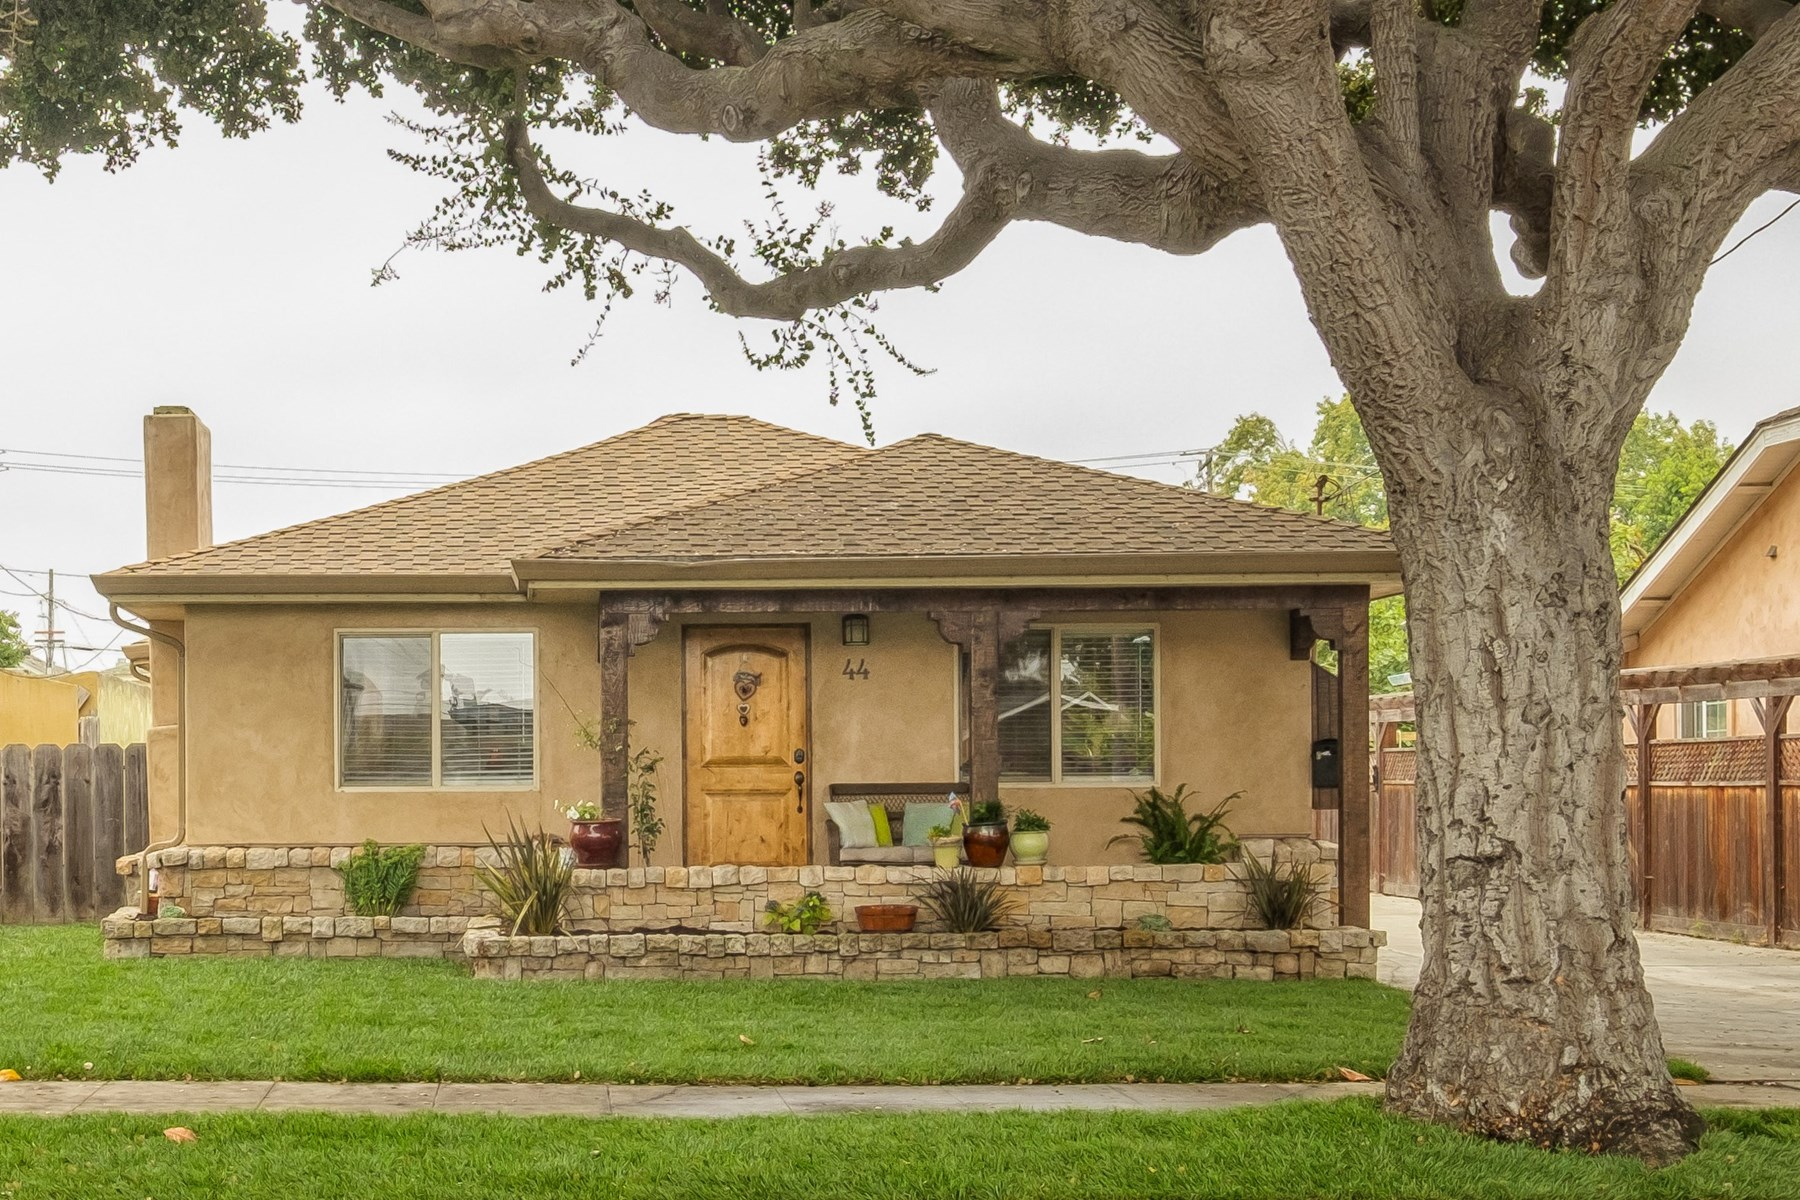 Single Family Home for Sale at Nicely Remodeled Home in Maple Park 44 Oak Street Salinas, California, 93901 United States